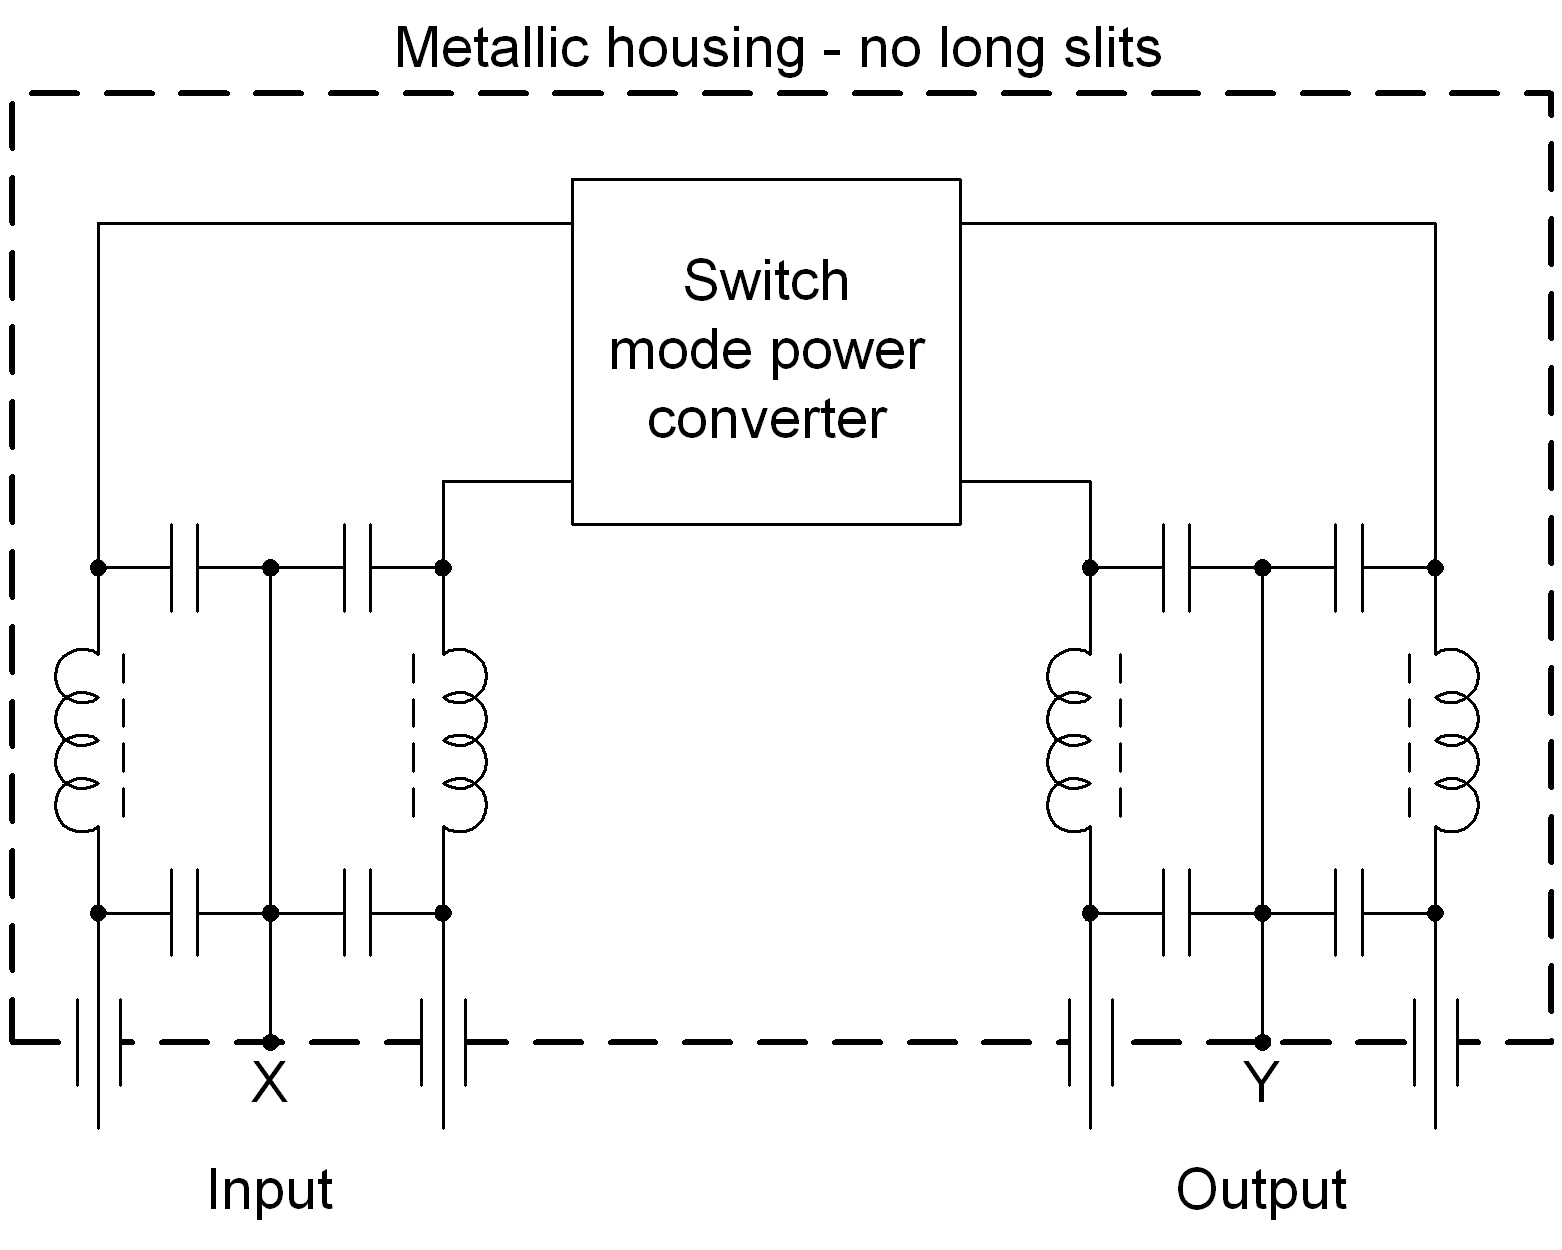 hight resolution of inside the housig there should be symmetric lc rf filter for input and output the filters must be designed for the used voltages and currents